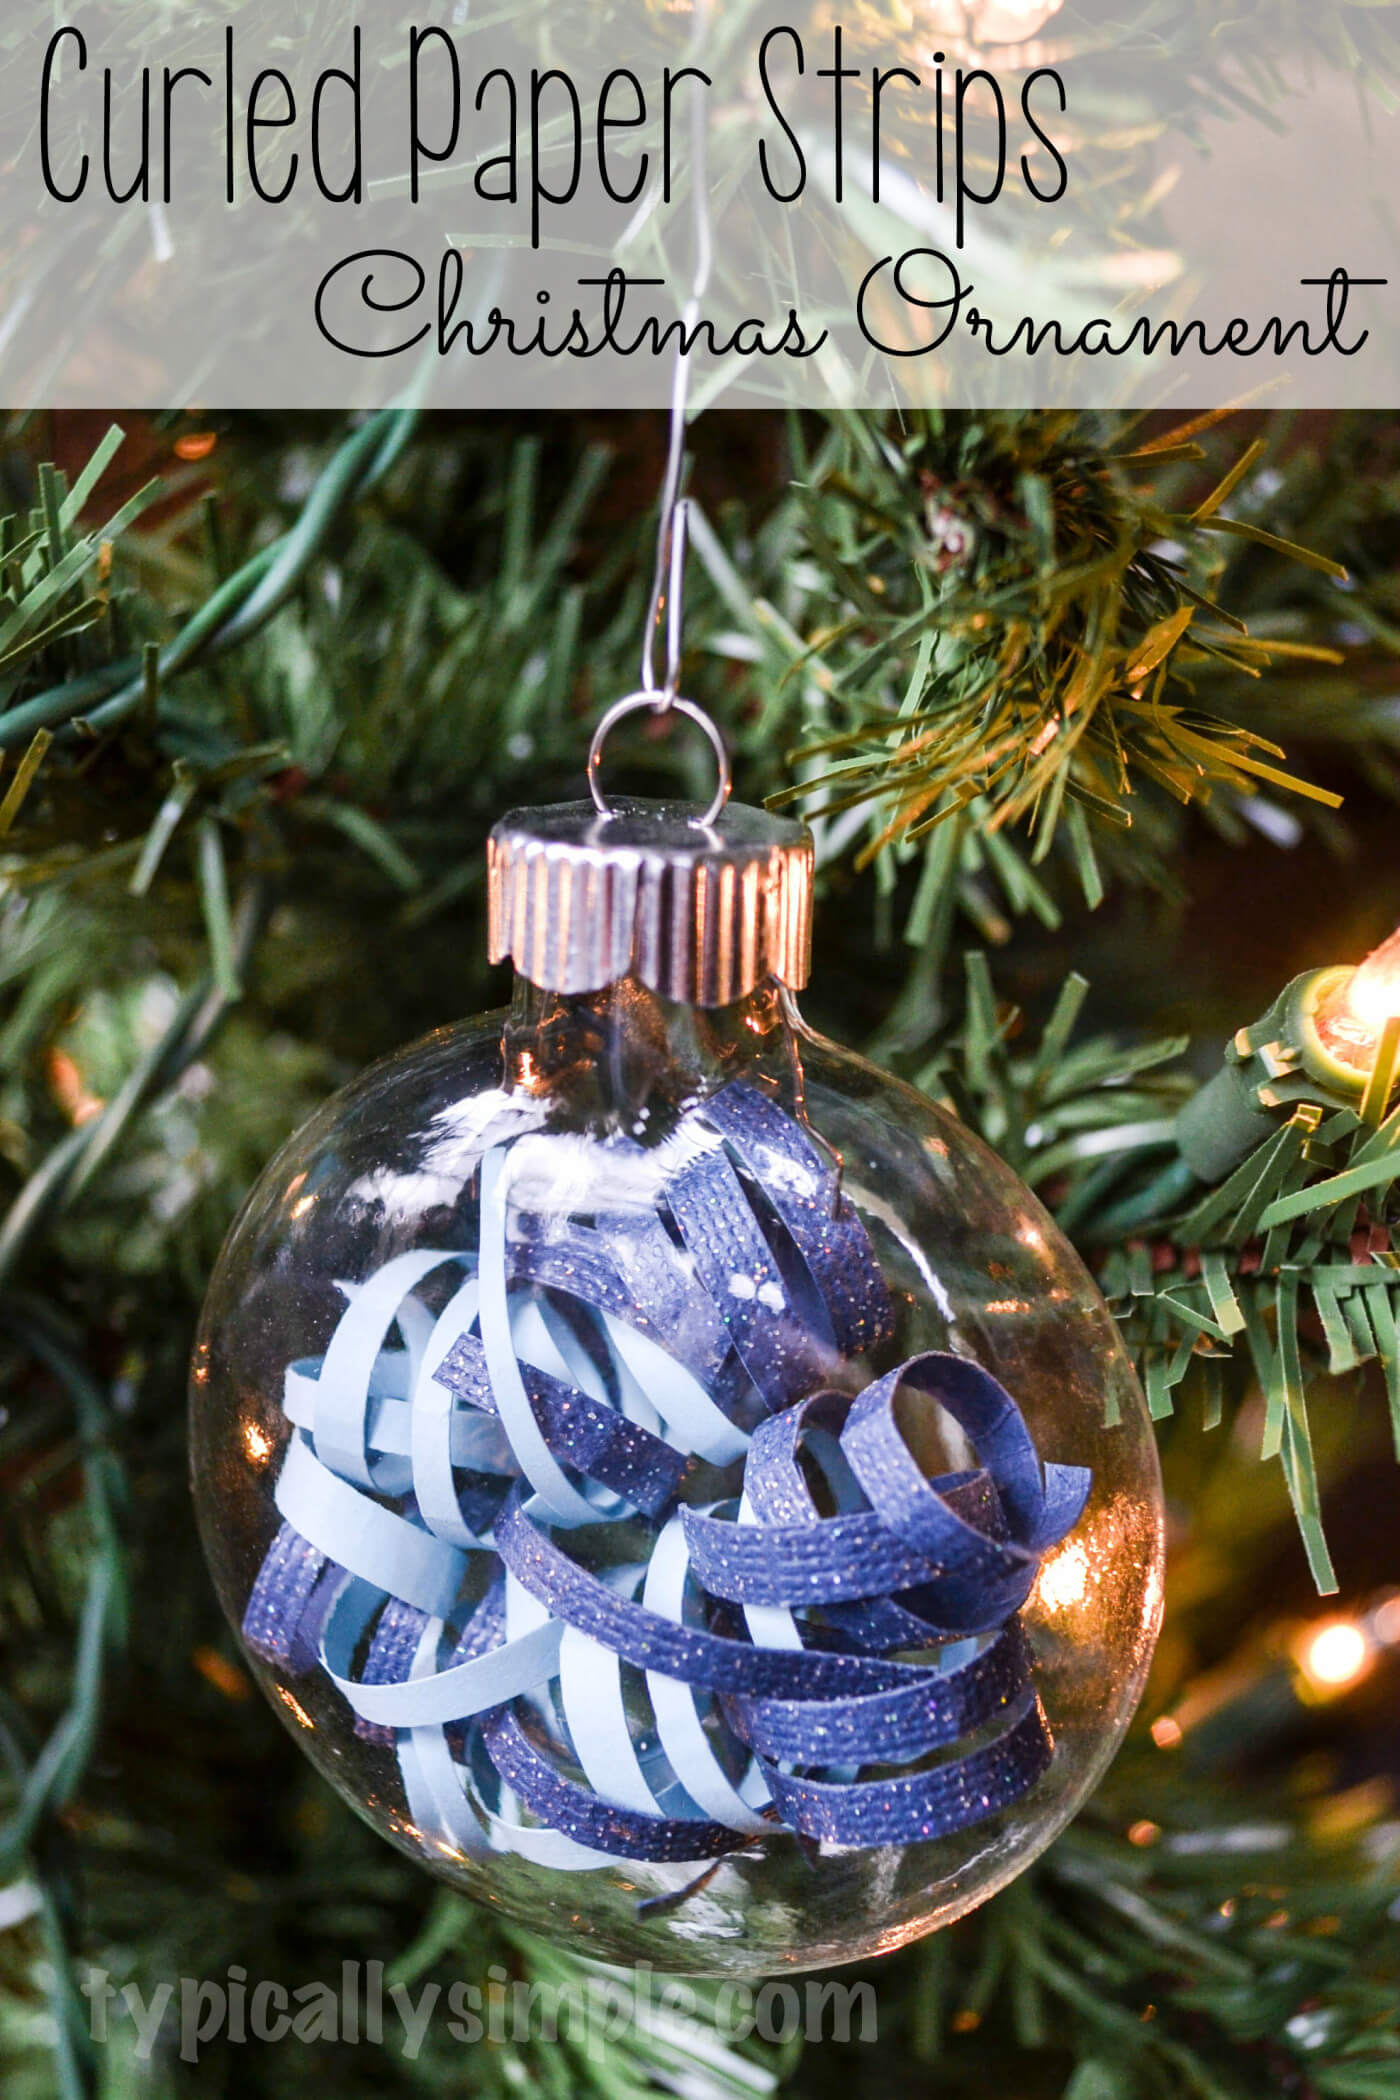 Curled Paper Strips Christmas Ornament from Typically Simple